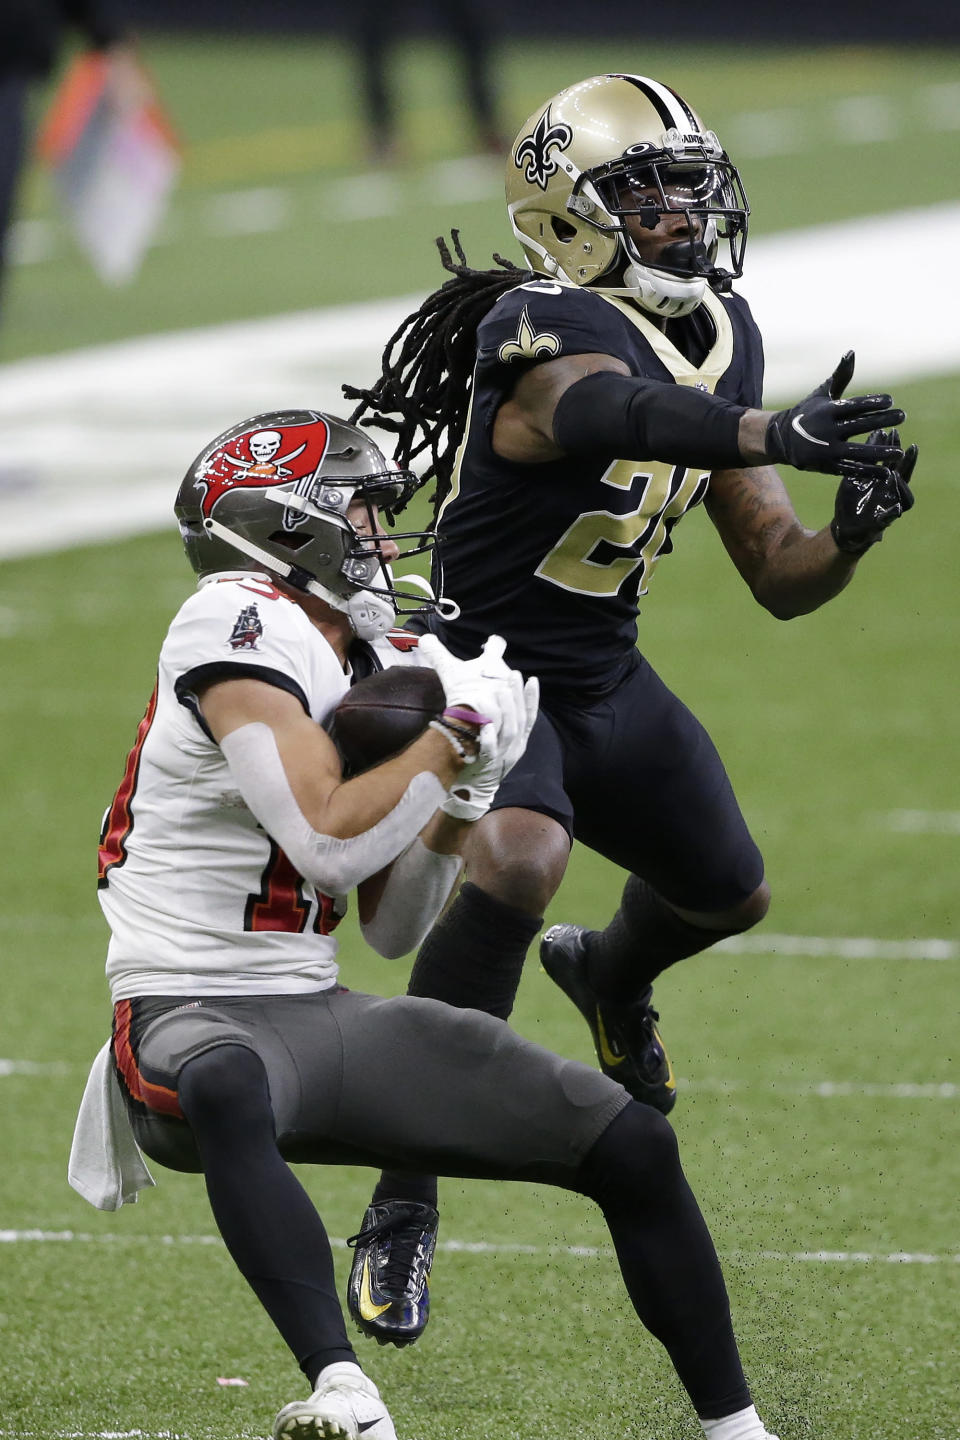 Tampa Bay Buccaneers wide receiver Scott Miller, left, catches a pass against New Orleans Saints cornerback Janoris Jenkins during the second half of an NFL divisional round playoff football game, Sunday, Jan. 17, 2021, in New Orleans. (AP Photo/Butch Dill)